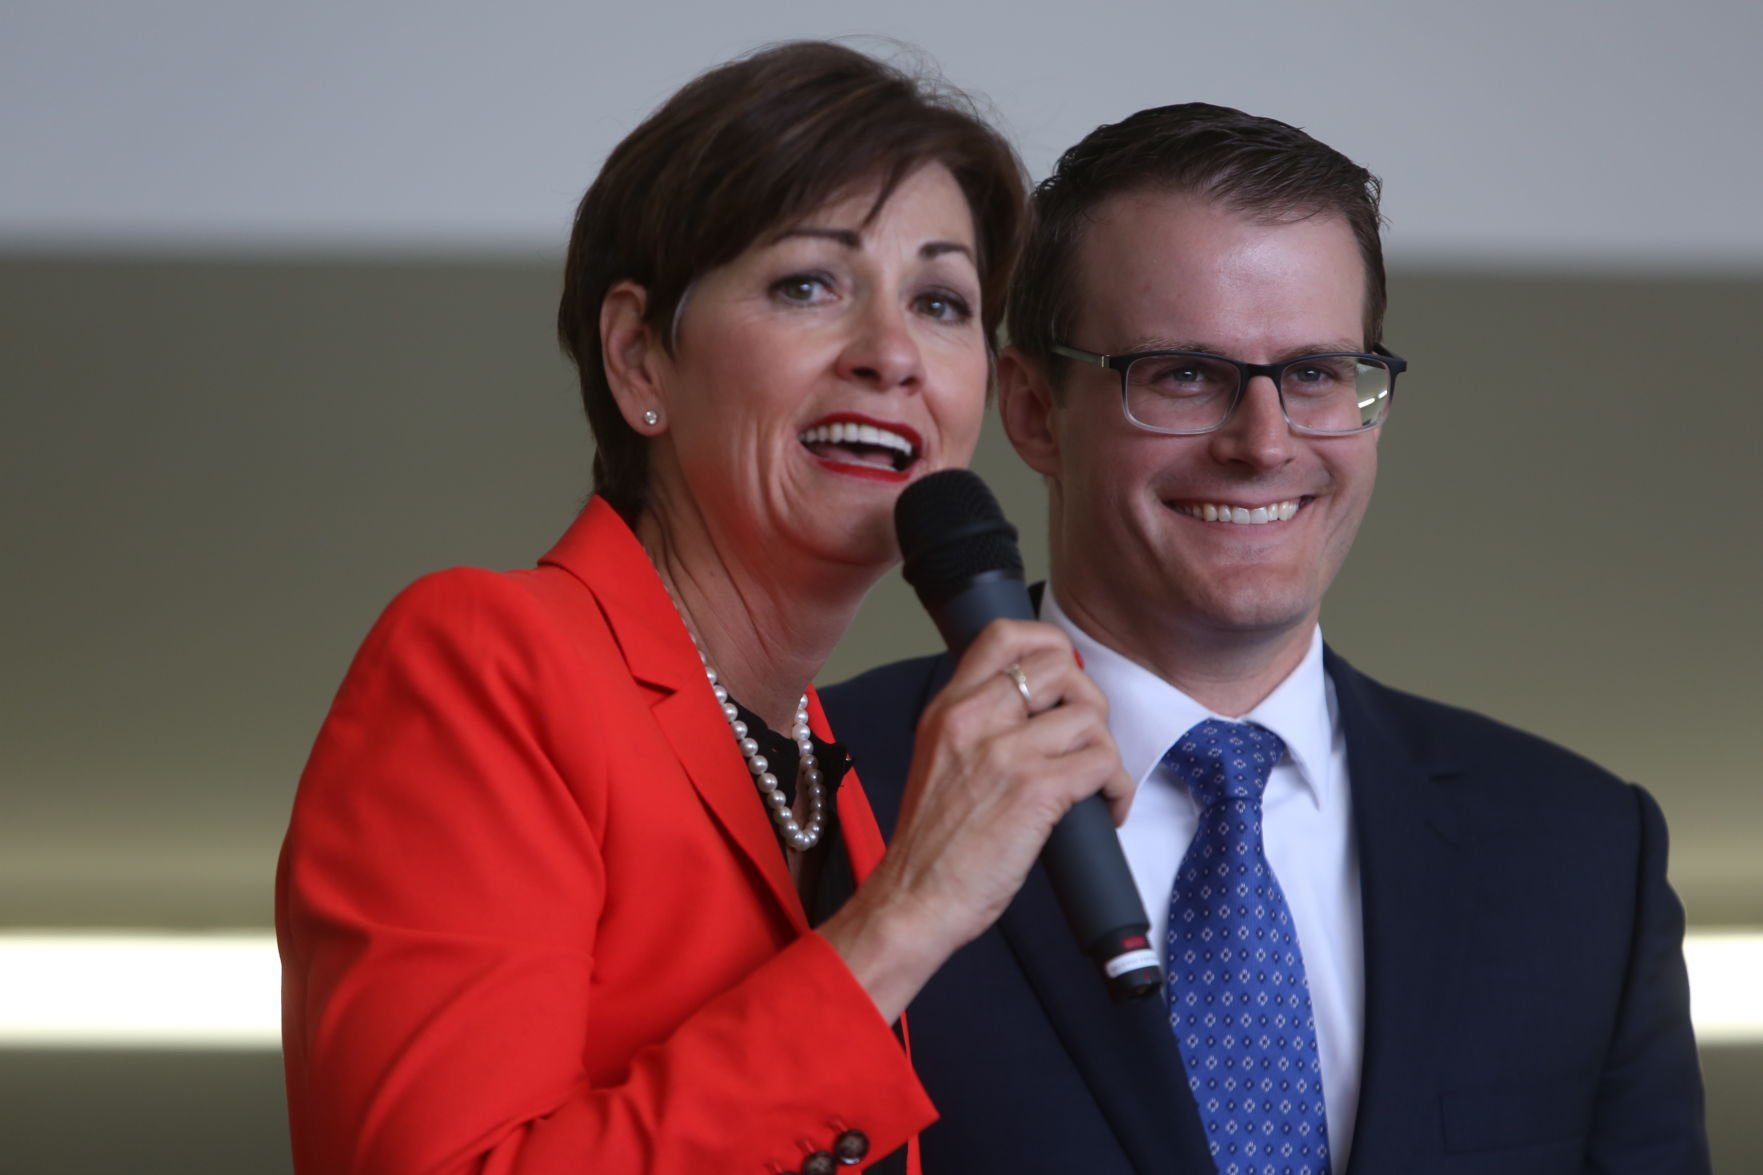 Reynolds defends private jet use, says she may do it again